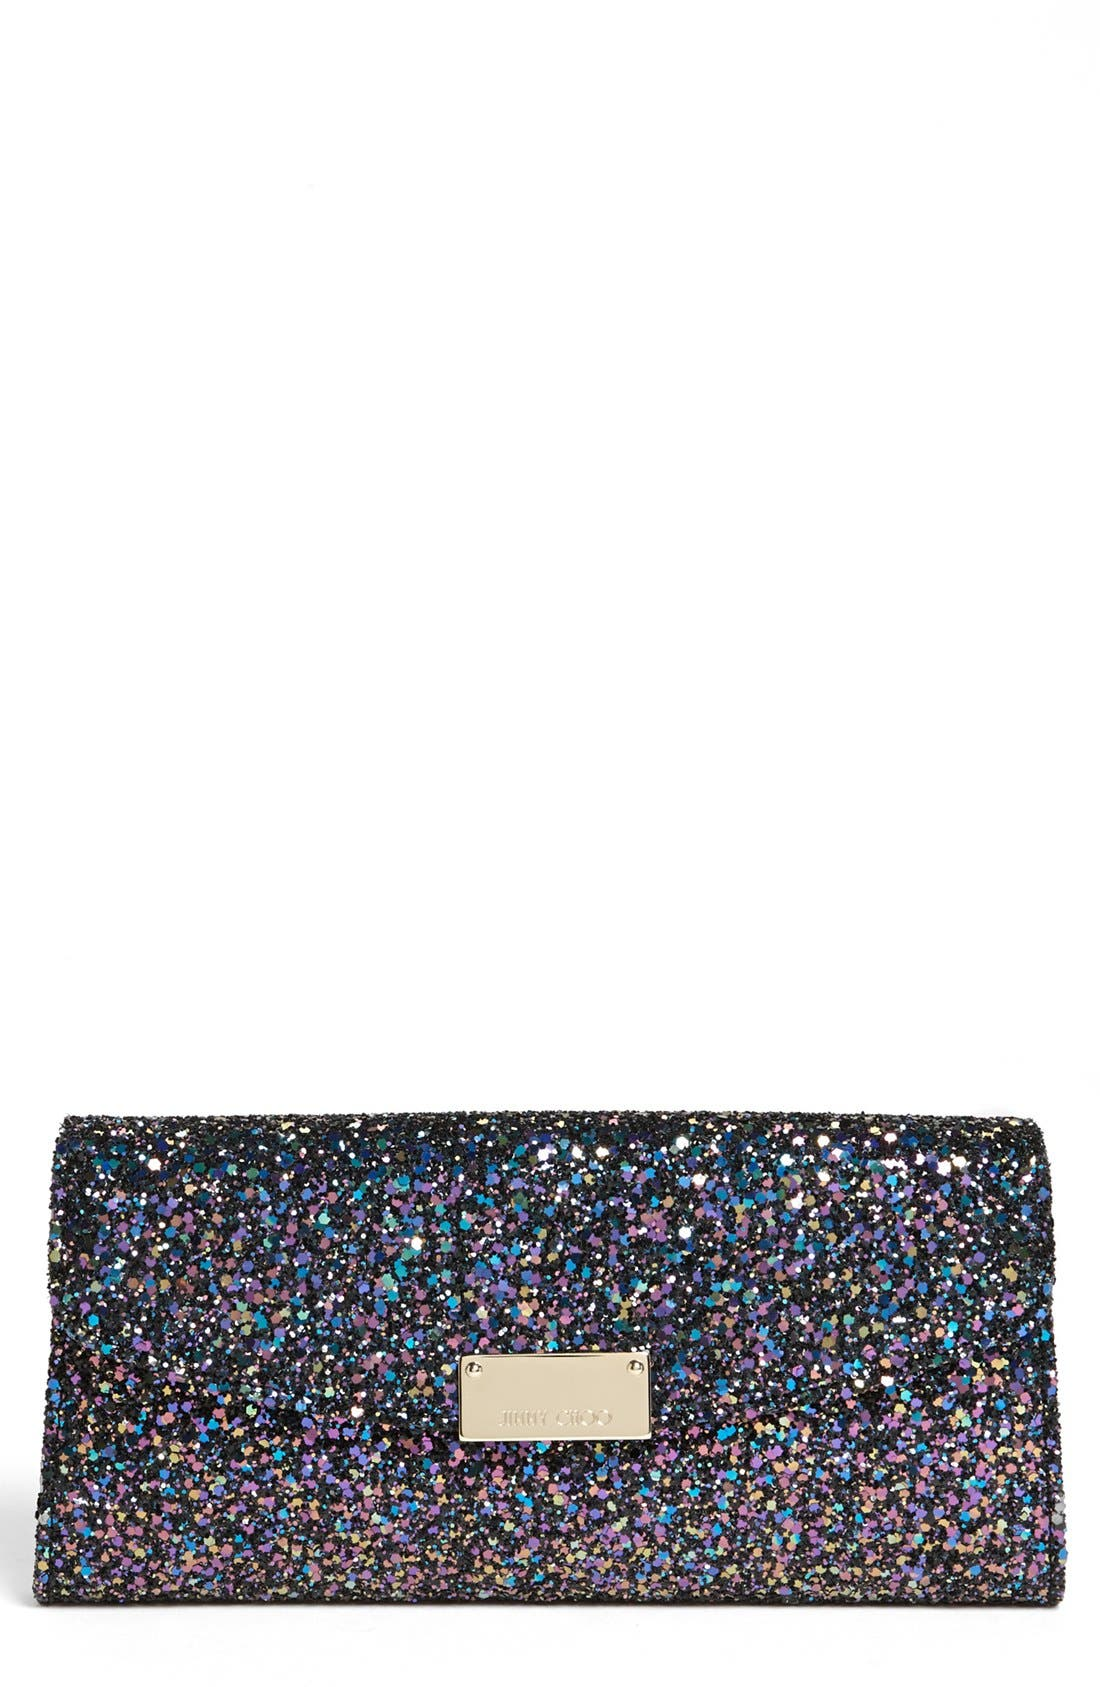 Alternate Image 1 Selected - Jimmy Choo 'Riane' Glitter Clutch